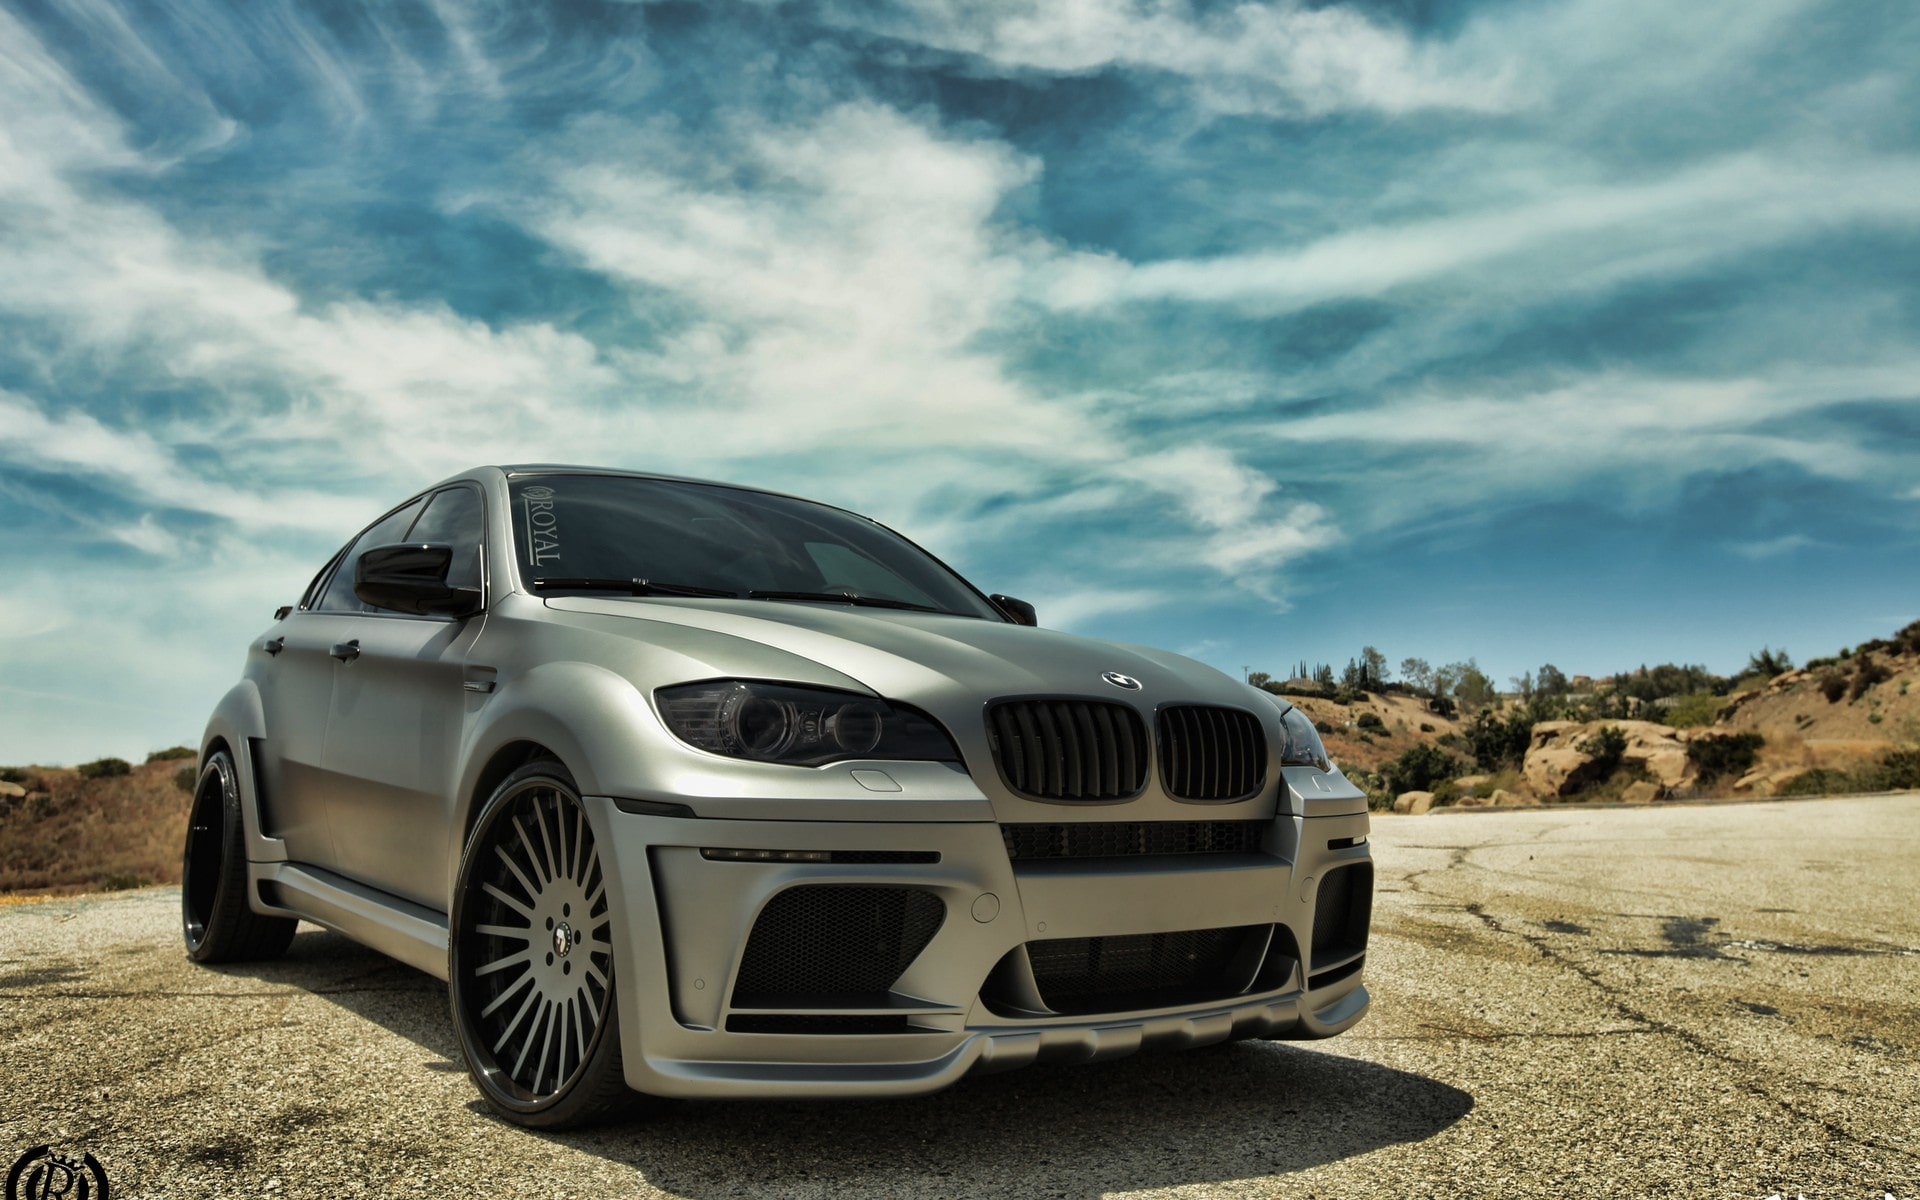 Bmw X6 Hd Wallpapers 7wallpapers Net